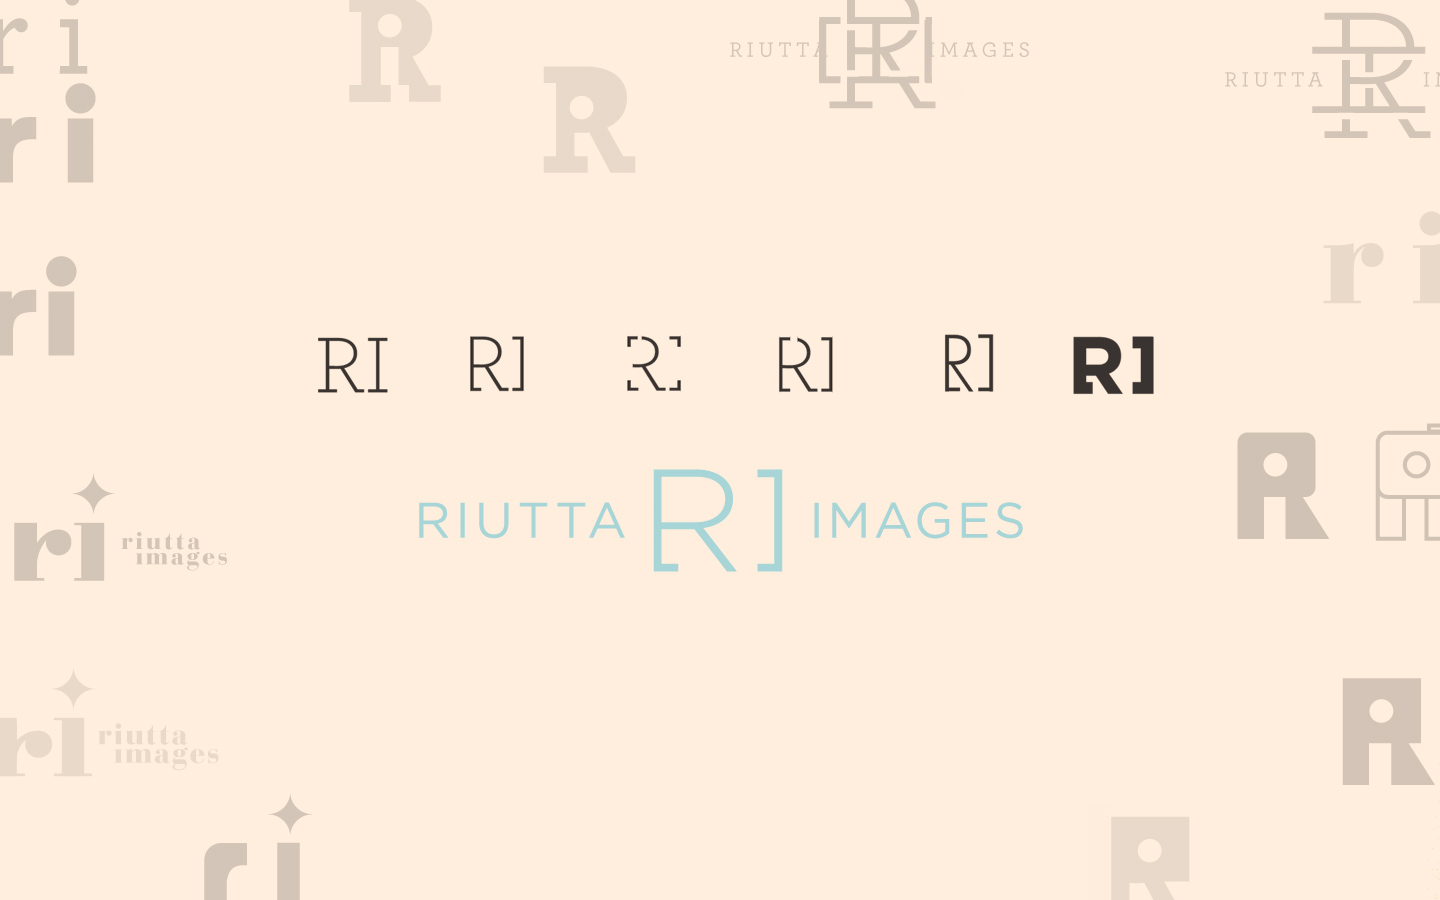 Riutta_images_application6